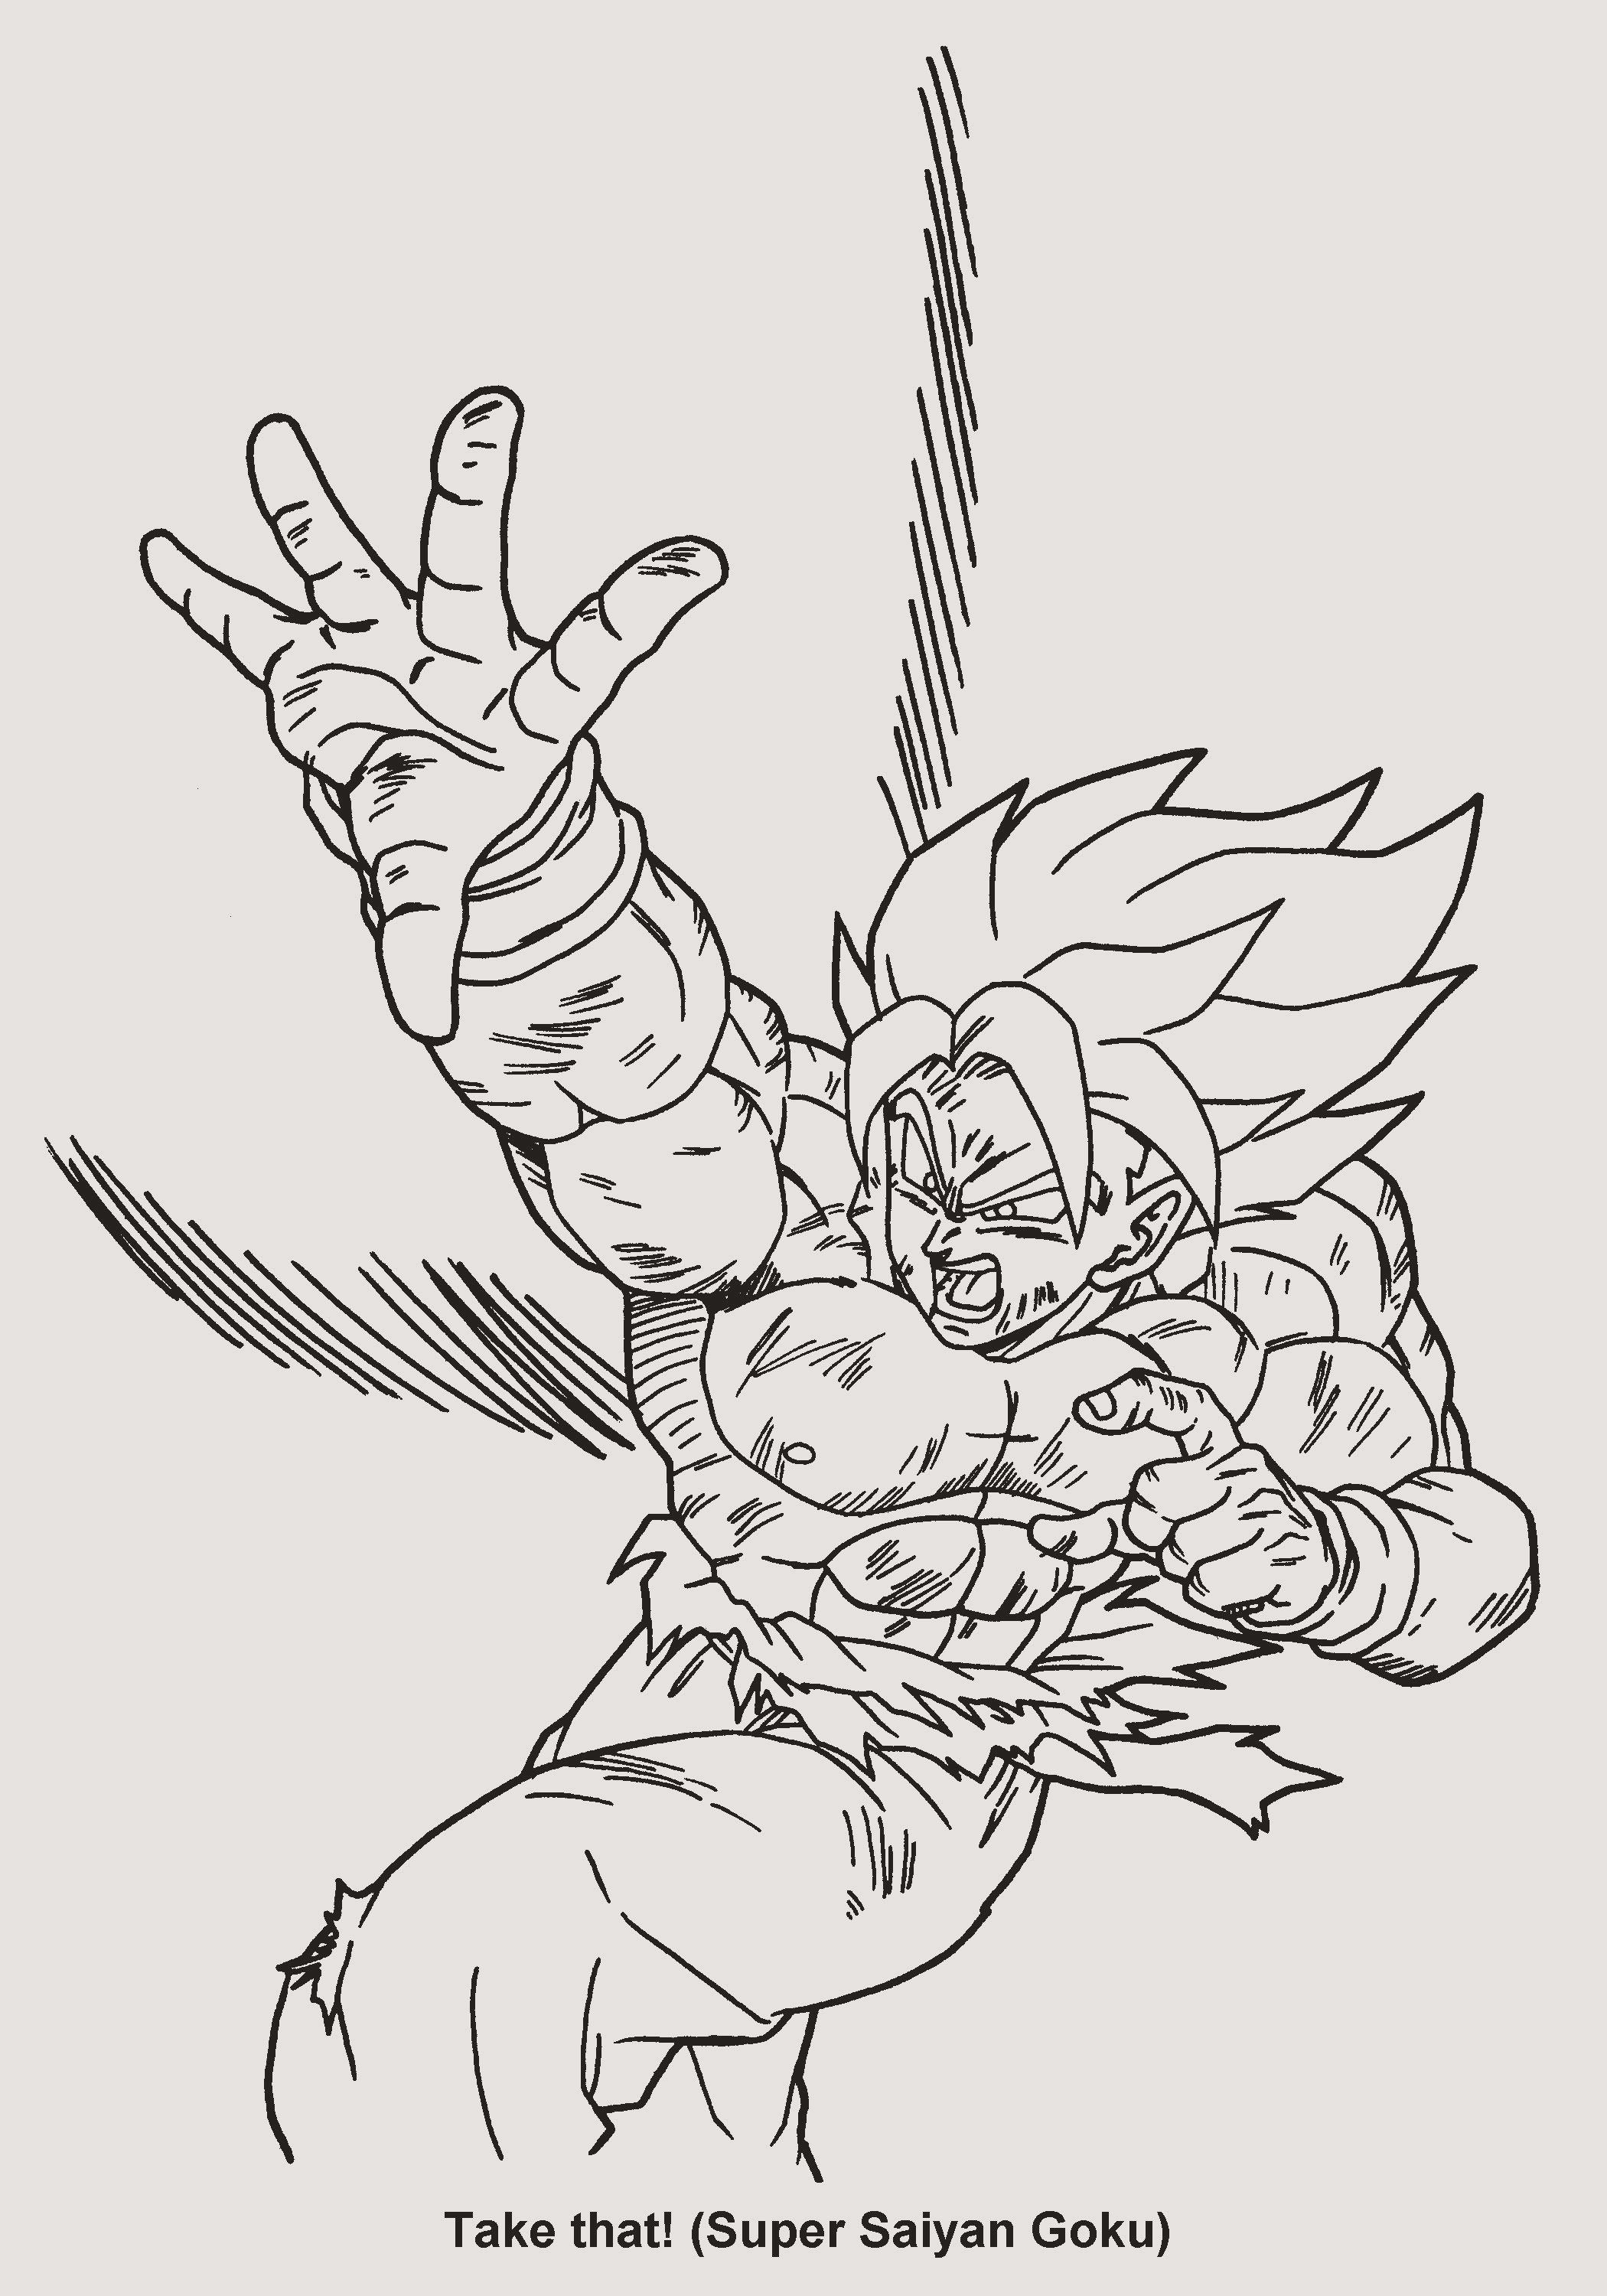 Dragon Ball Z Coloring Unique 30 Top Dragon Ball Z Ausmalbilder Neuste Mermaid Coloring Pages Coloring Birthday Cards Printable Coloring Book